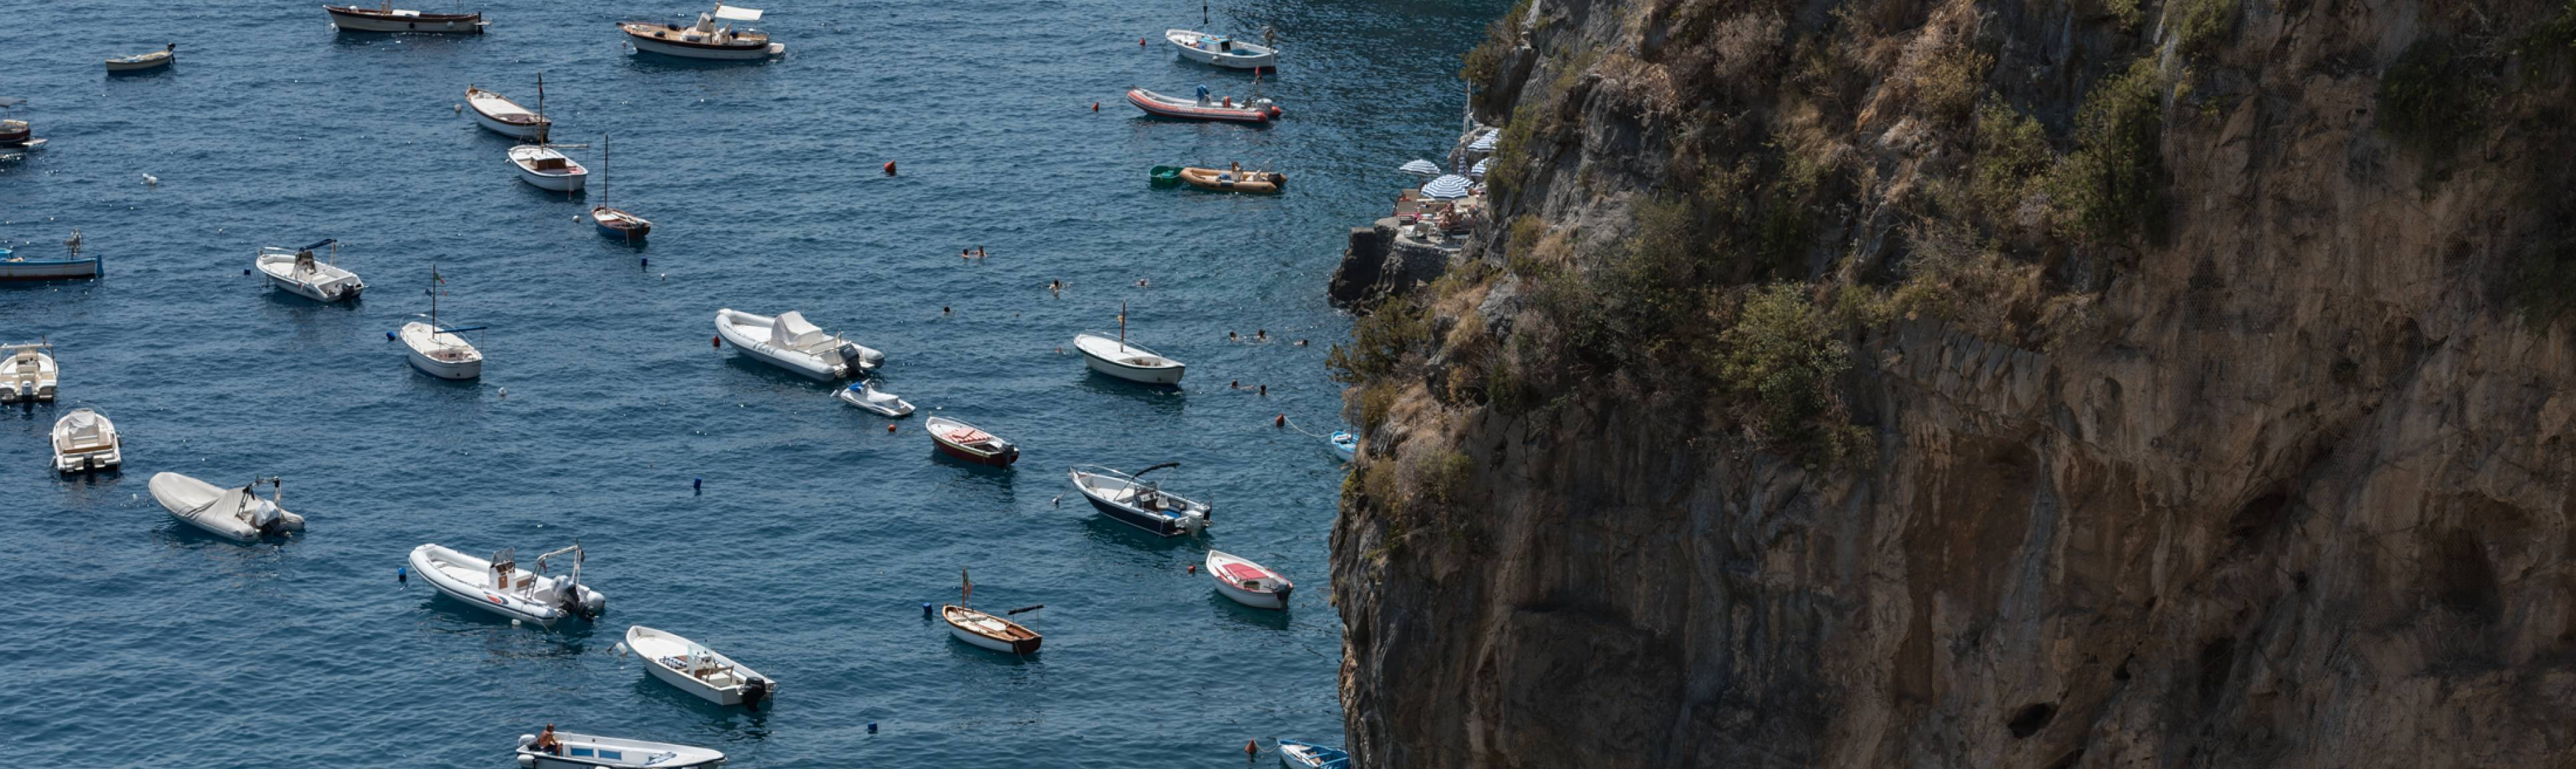 Cliff view looking down at ships at sea of the Amalfi Coast